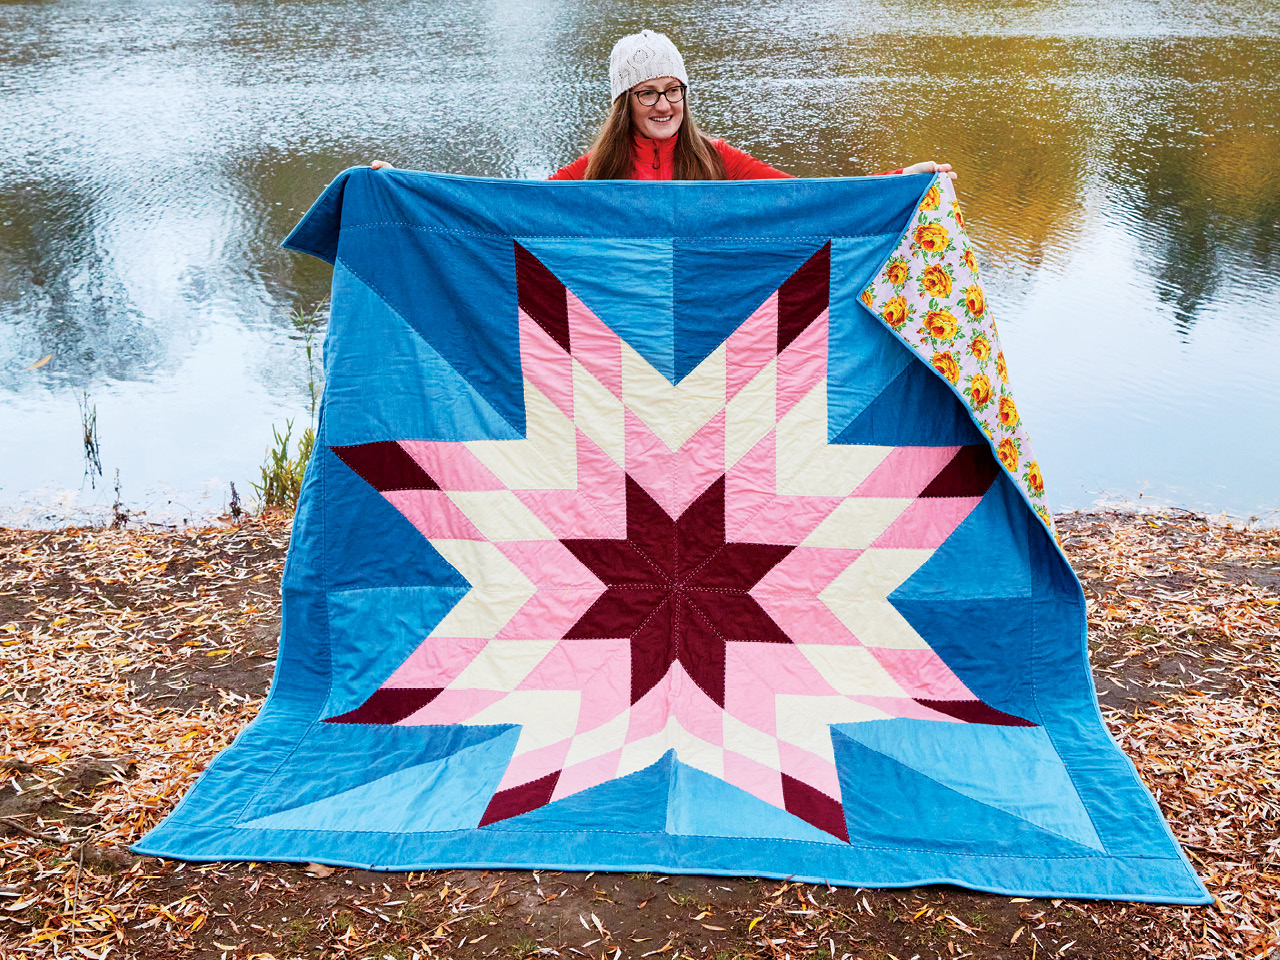 The author holds her pandemic quilt, a large mix of denim and fabric